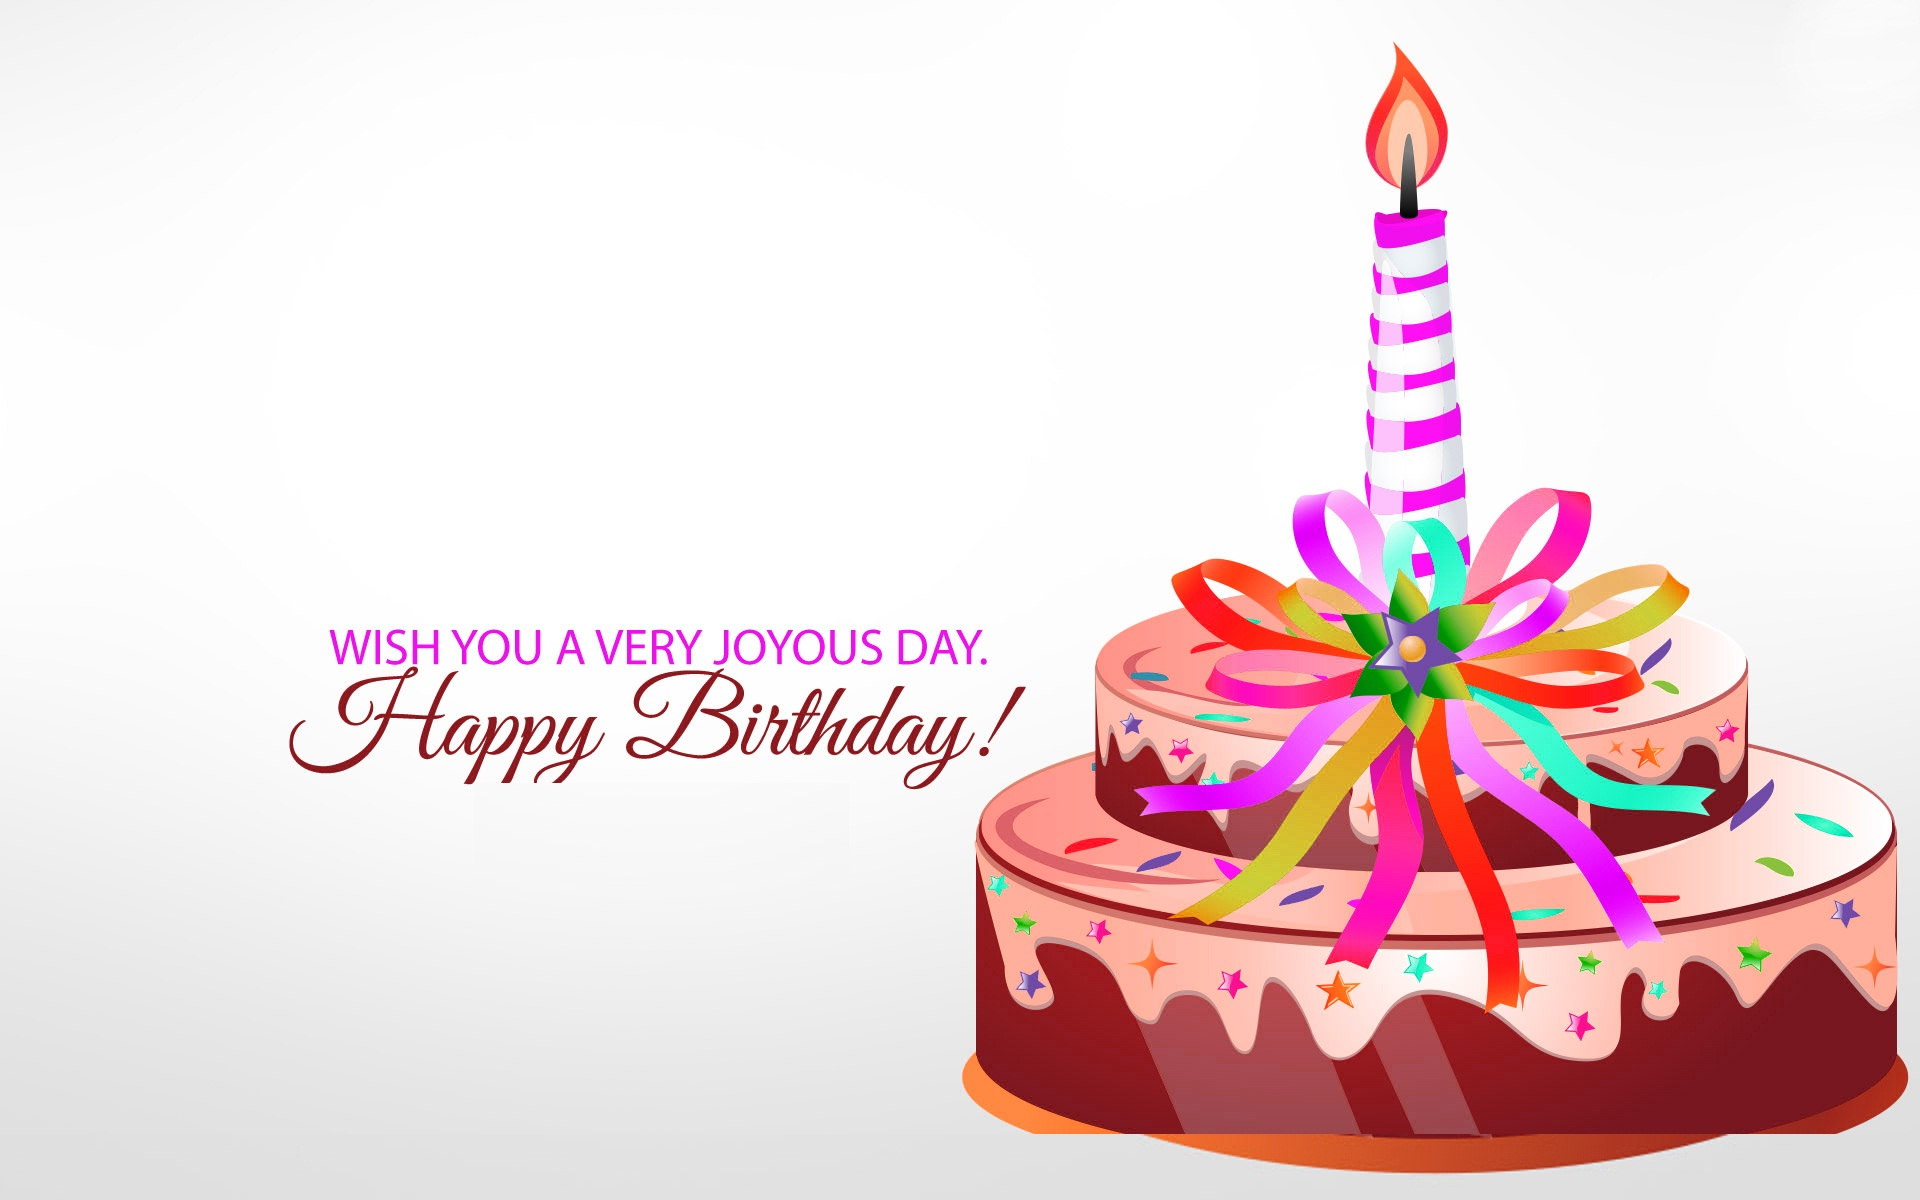 birth day hd images ; Wish-you-very-prosperous-birthday